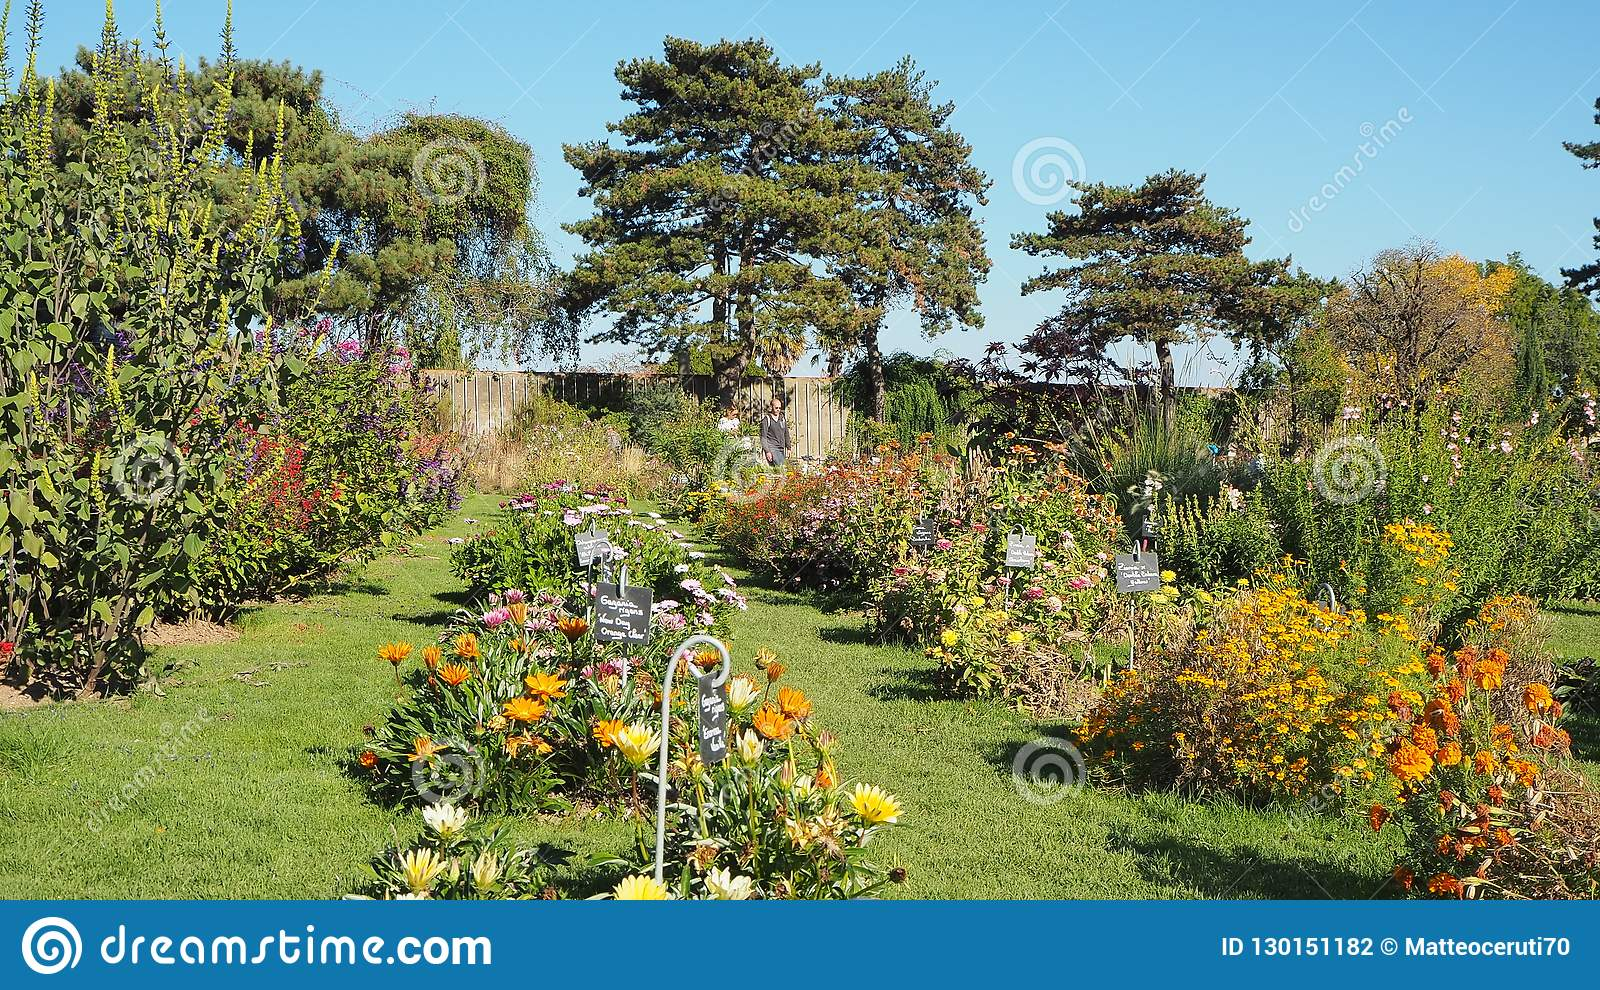 nantes france jardin des plantes de nantes municipal botanical garden city center nantes france jardin des